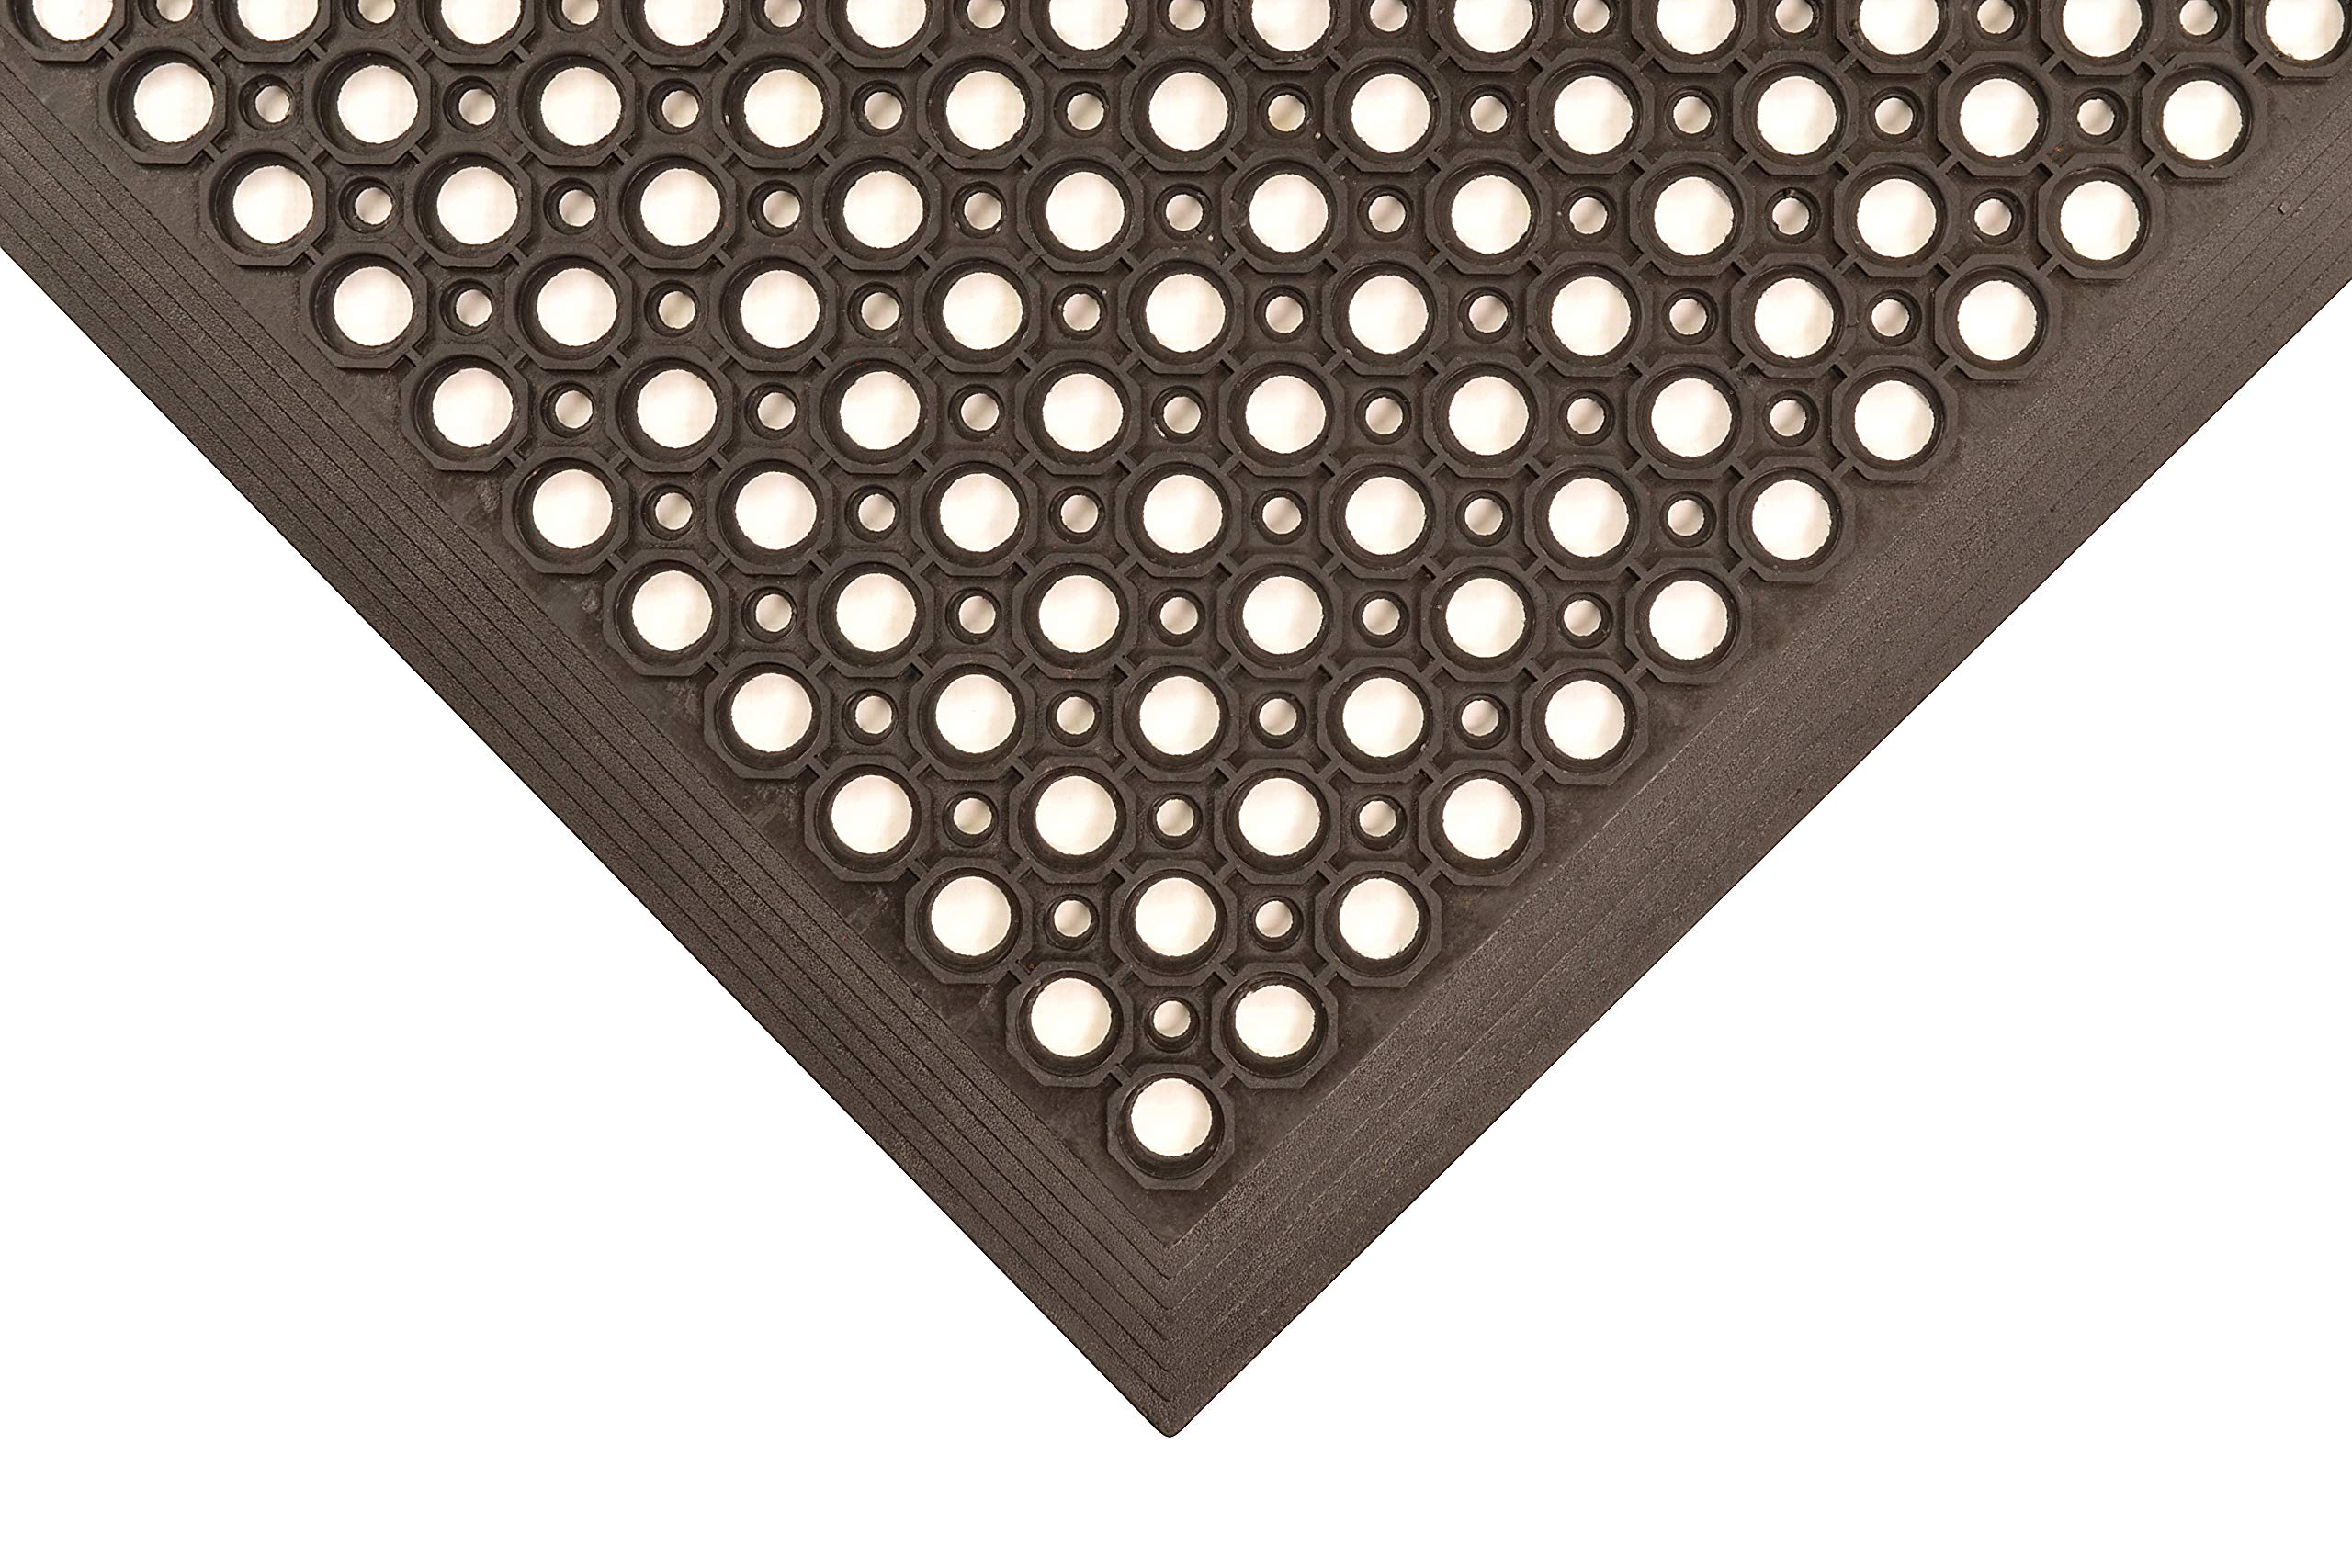 NoTrax T30 General Purpose Rubber Competitor Safety/Anti-Fatigue Mat, for Wet Areas, 3' Width x 5' Length x 1/2'' Thickness, Black